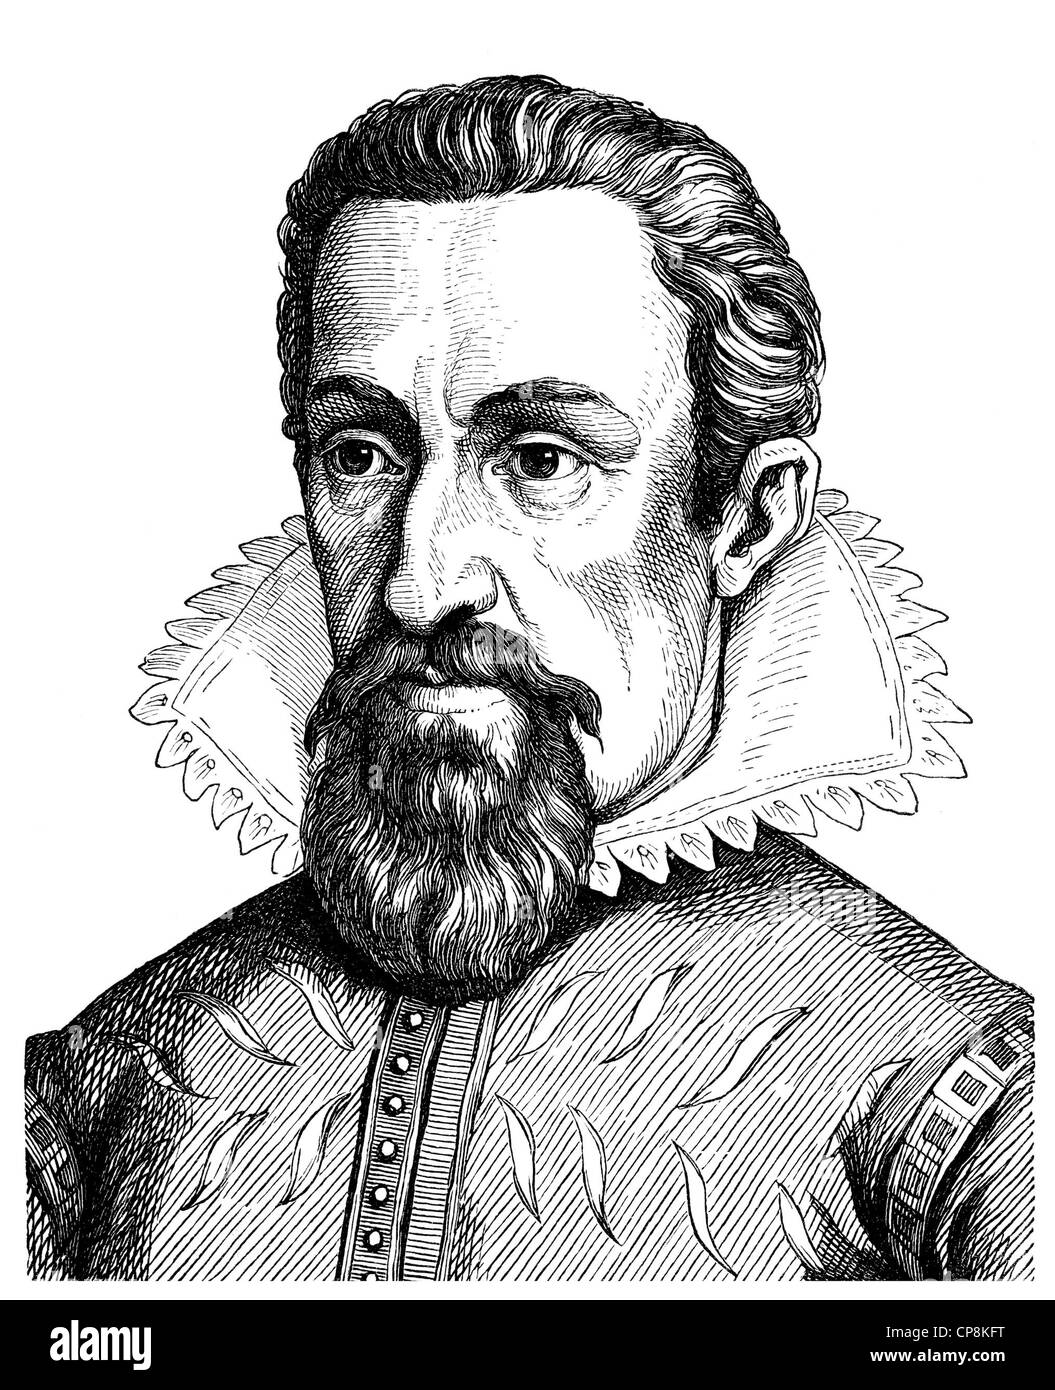 Johannes Kepler or Keppler, 1571-1630, German philosopher, mathematician, astronomer, astrologer, optician and Protestant - Stock Image